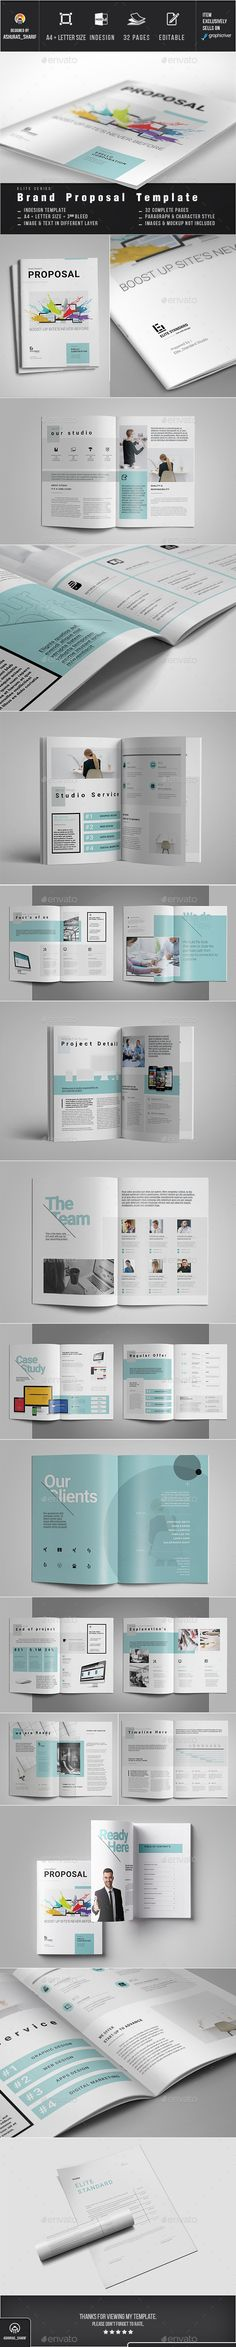 Proposal — InDesign INDD #brochure #template • Download ➝ https://graphicriver.net/item/proposal/18469738?ref=pxcr